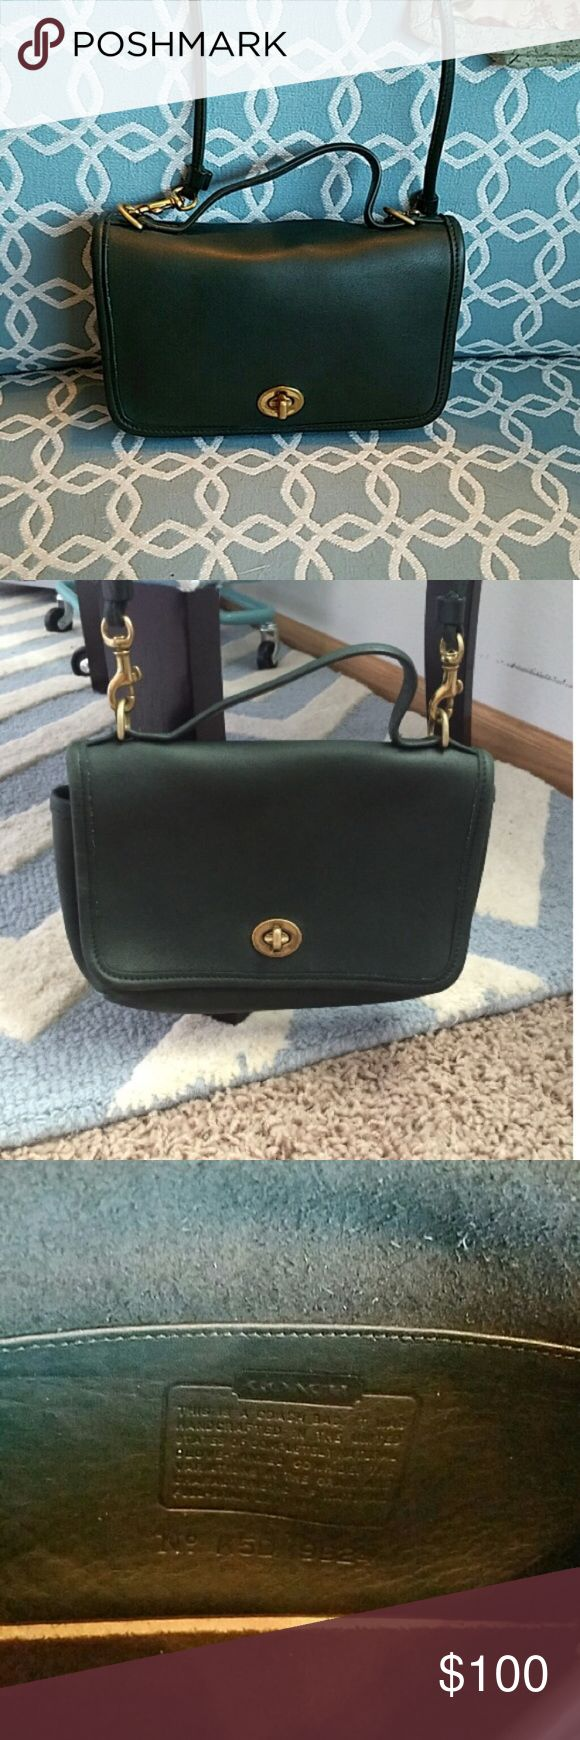 "Coach Green Vintage Classic Casino Crossbody ✨Excellent vintage condition ✨ hardware ✨ removable 27"" strap drop ✨ drop handle ✨ cleaned, polished, and moisturized ✨ serial # K5D 9924 ✨ inside slip pocket ✨ outside slip pocket ✨ Coach Bags Crossbody Bags"